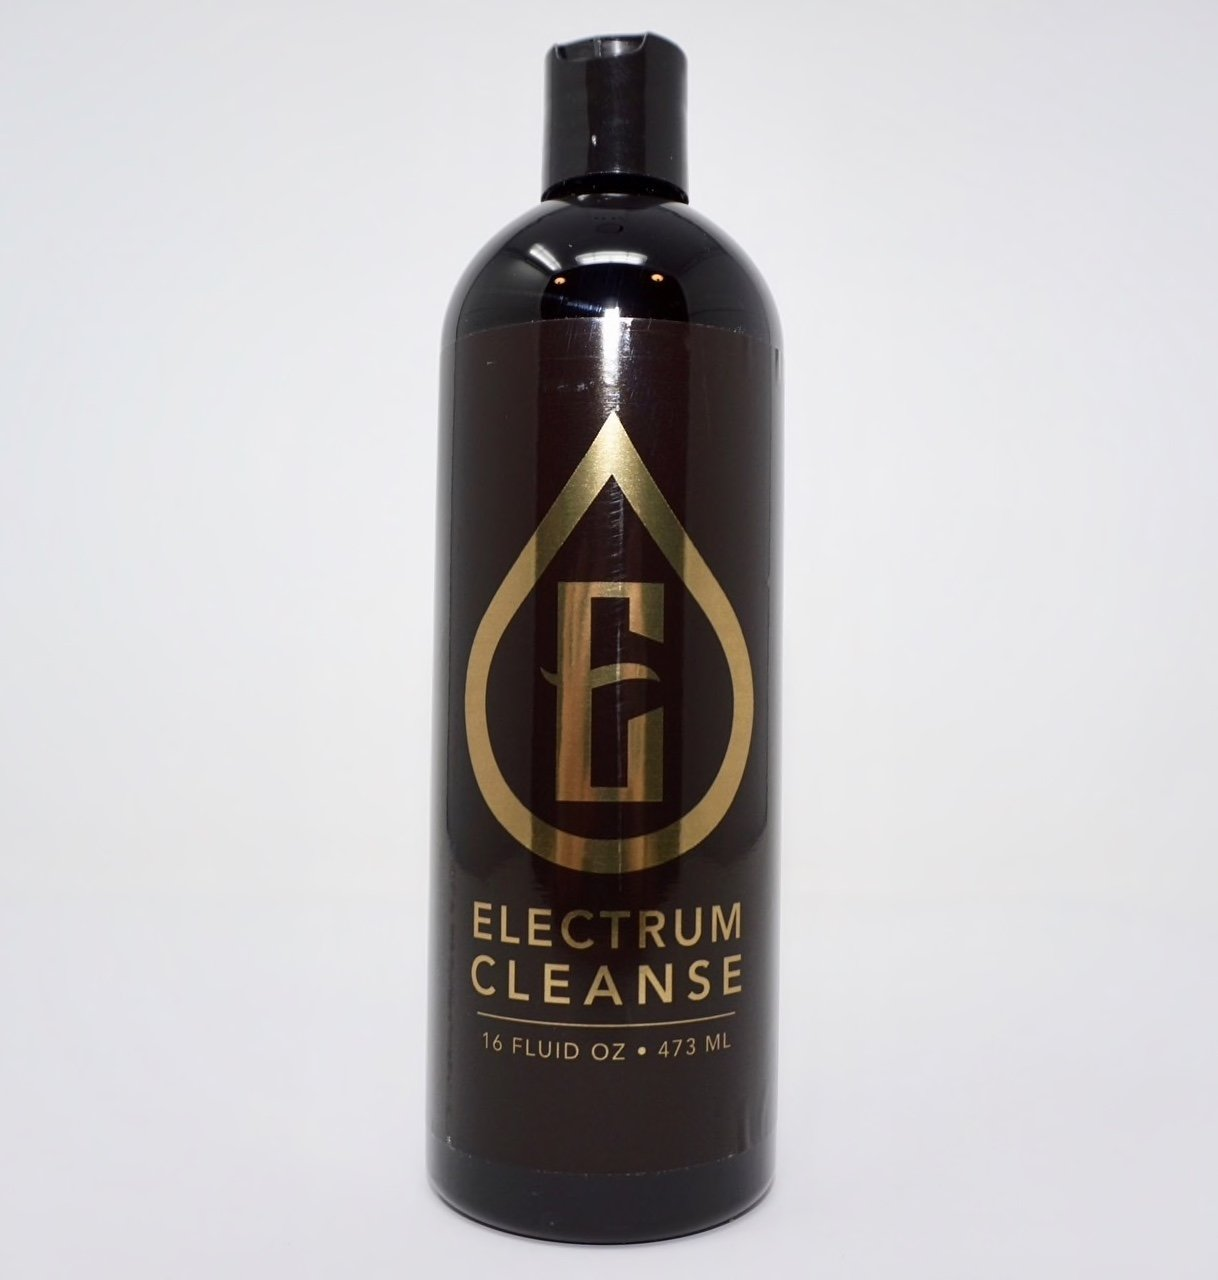 Electrum Cleanse Tattoo Cleanser & Rinse Solution - Station Prep. & Barrier - FYT USA